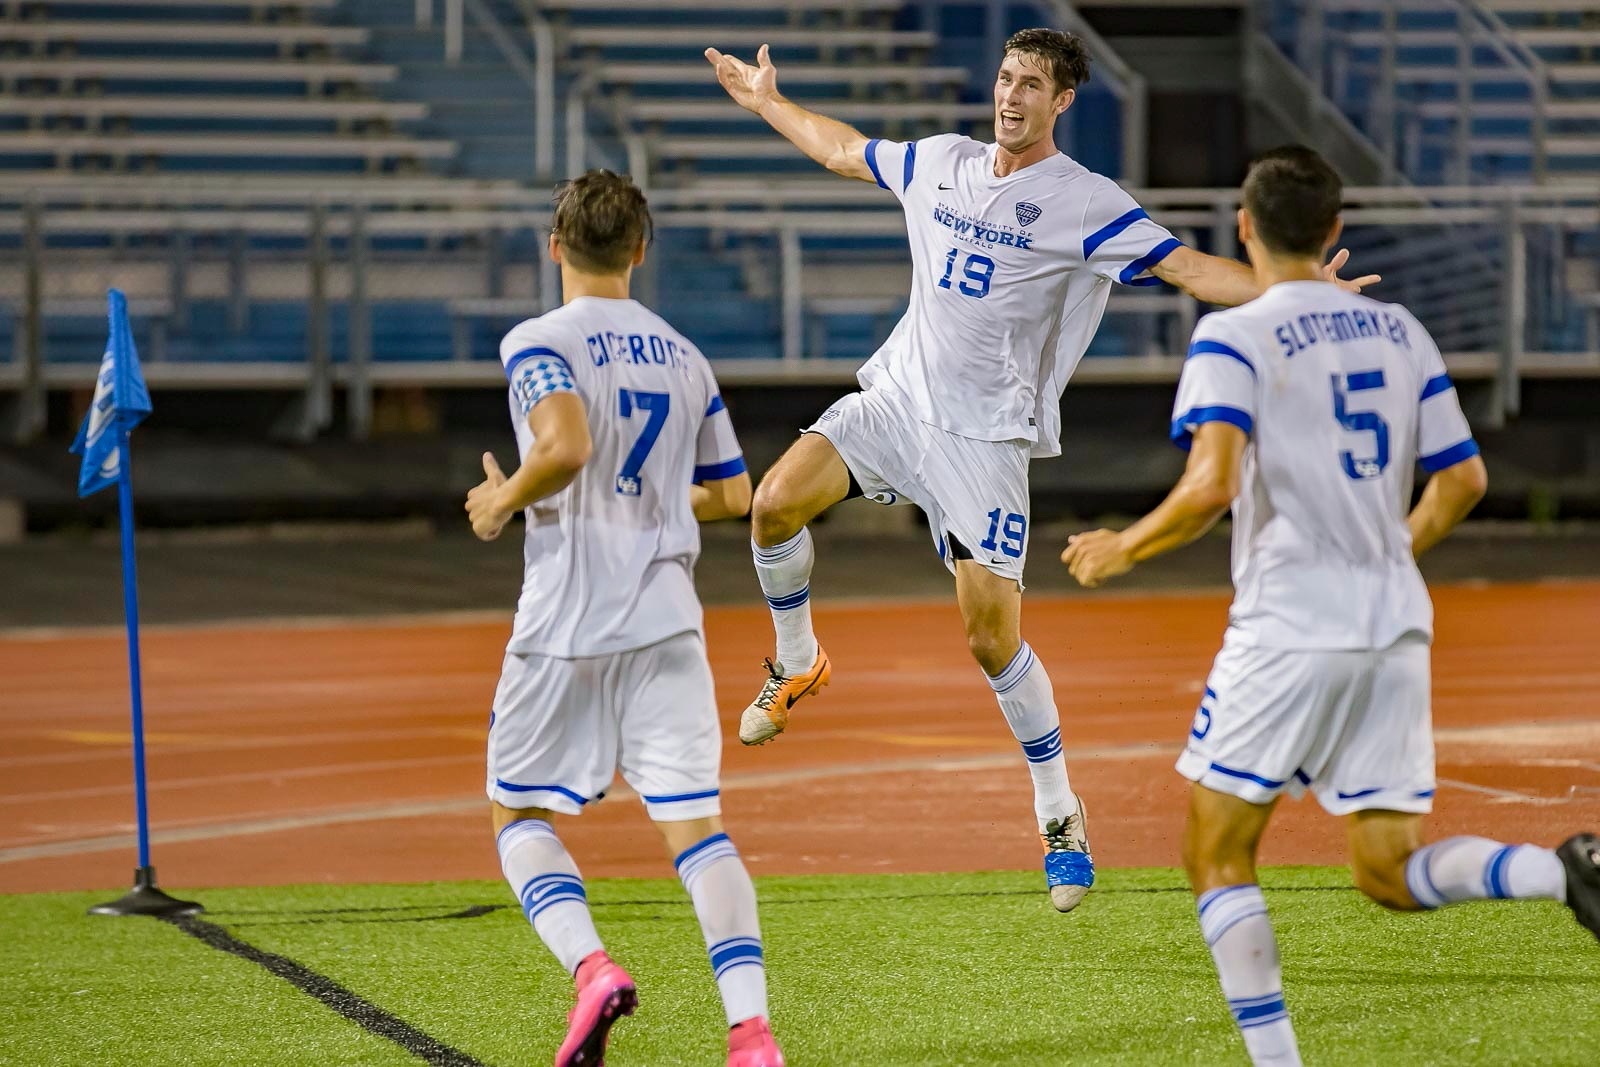 UB's Scott Doney scored the eventual game-winning goal as the Bulls beat West Virginia. (Don Nieman/Special to The News)